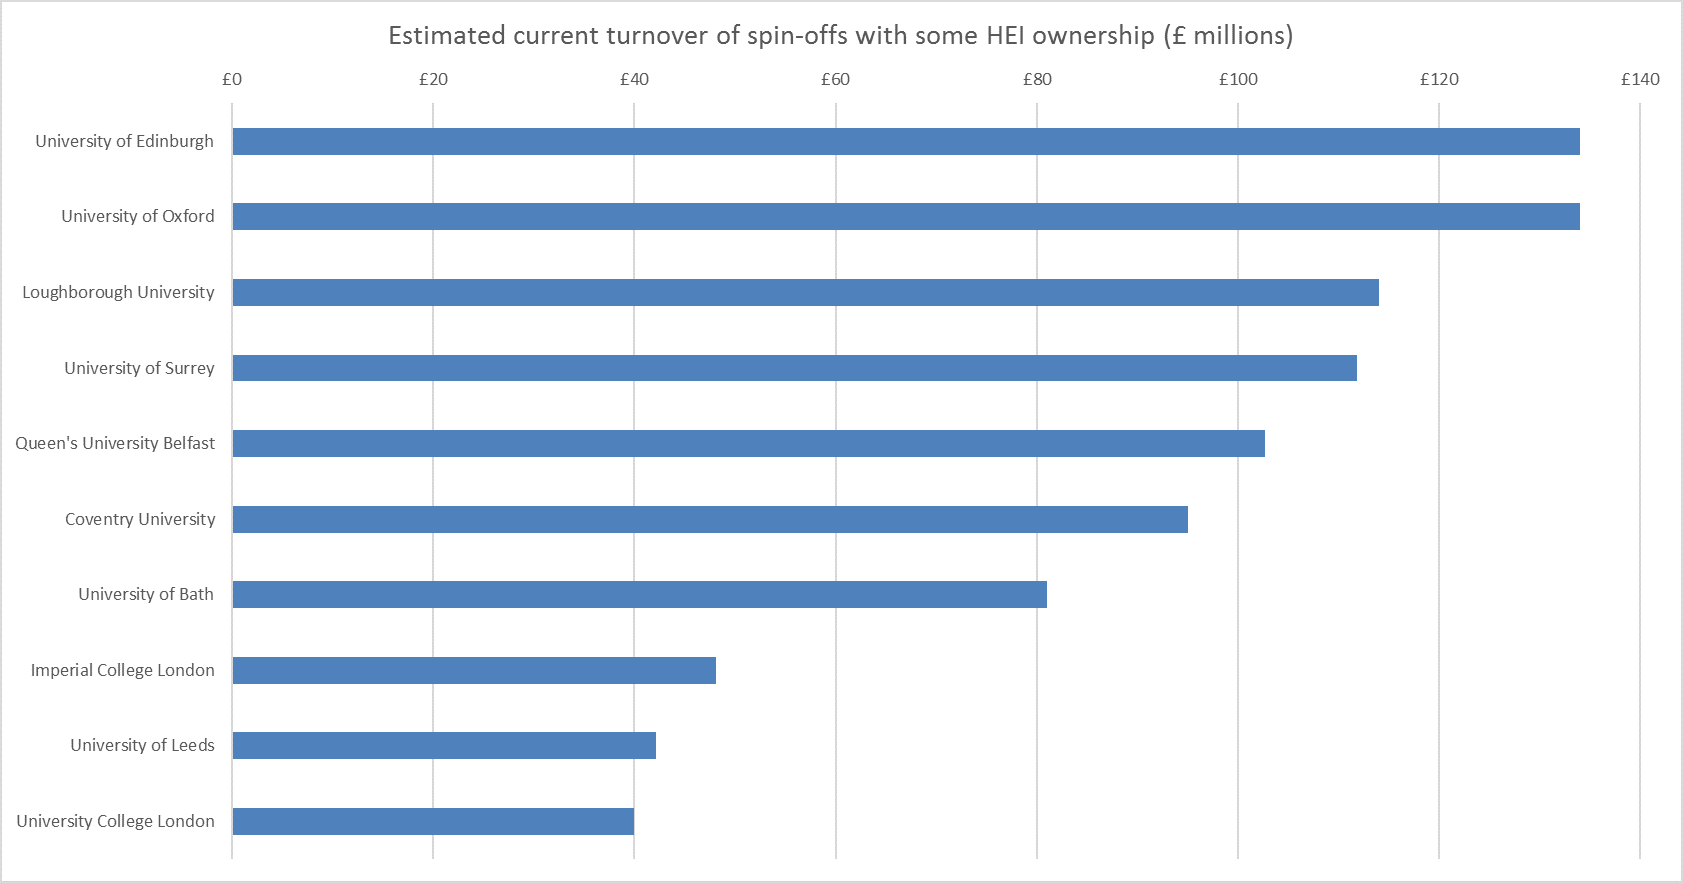 Estimated current turnover of university-owned spin-offs in 2015-16